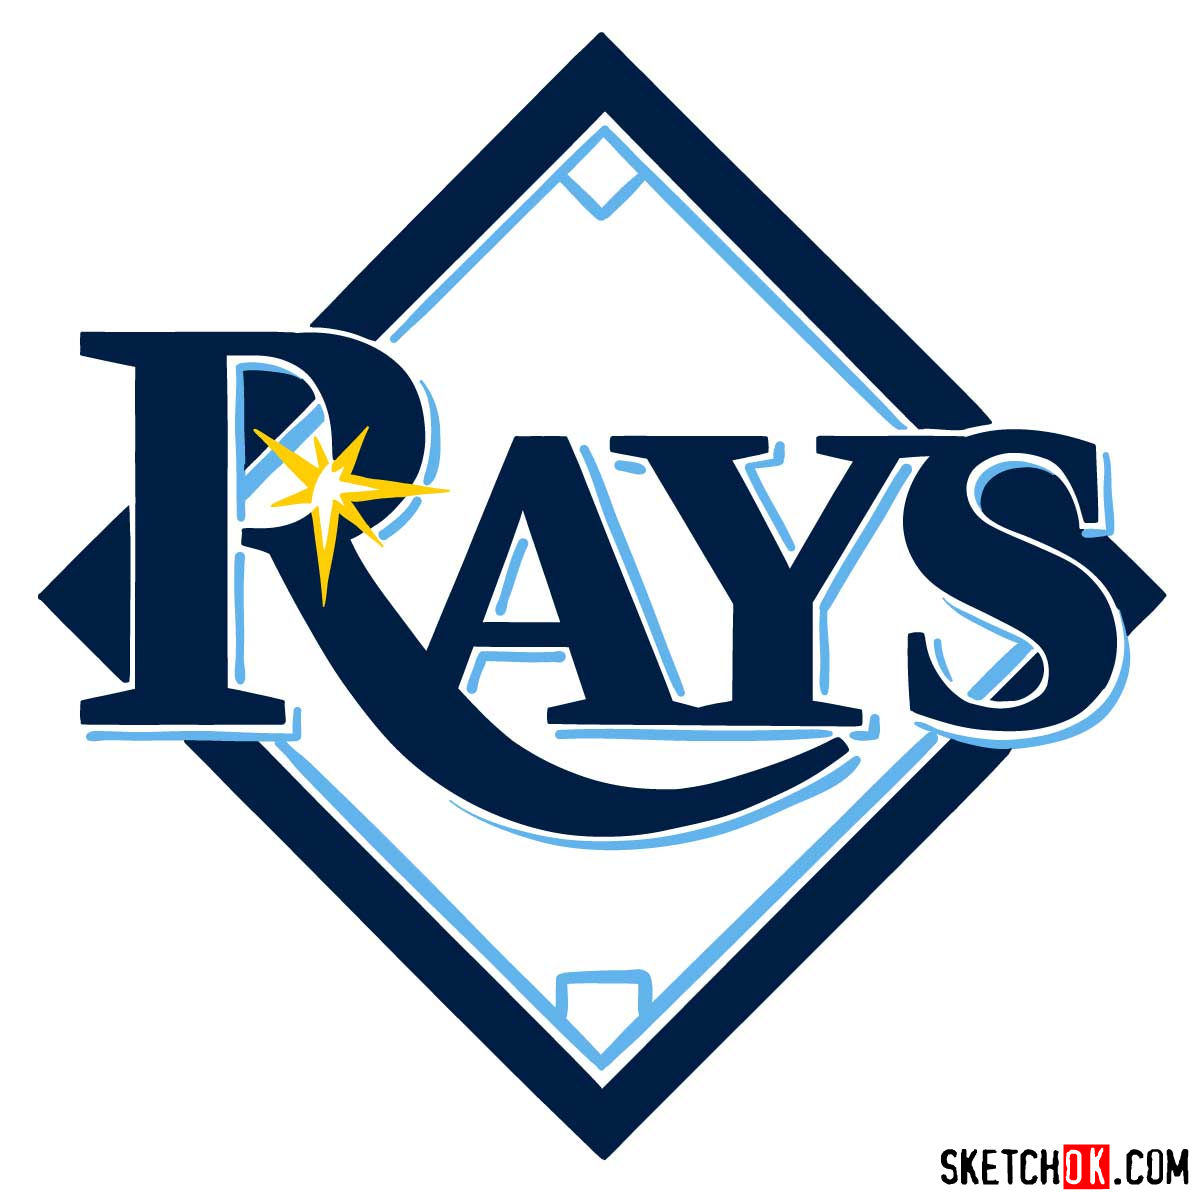 How to draw Tampa Bay Rays logo | MLB logos - coloring